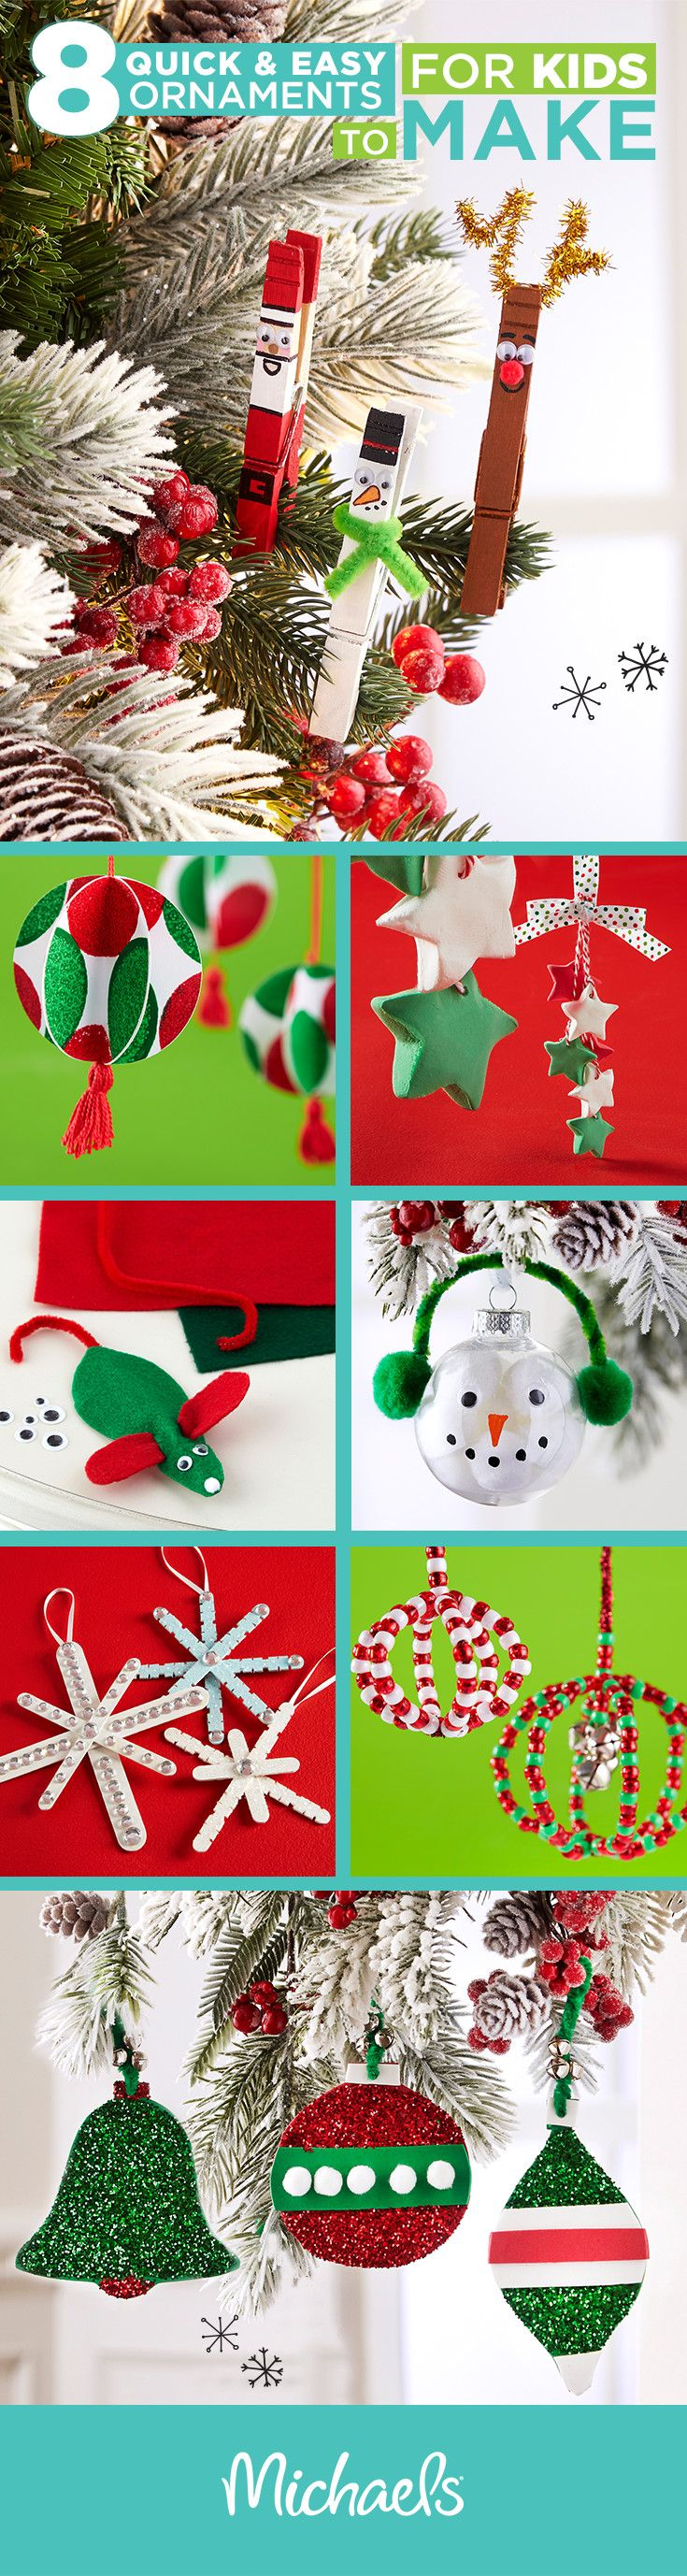 Drama christmas ornaments - Make This Holiday Memorable By Crafting Diy Ornaments With Your Kids These Projects Are Perfect